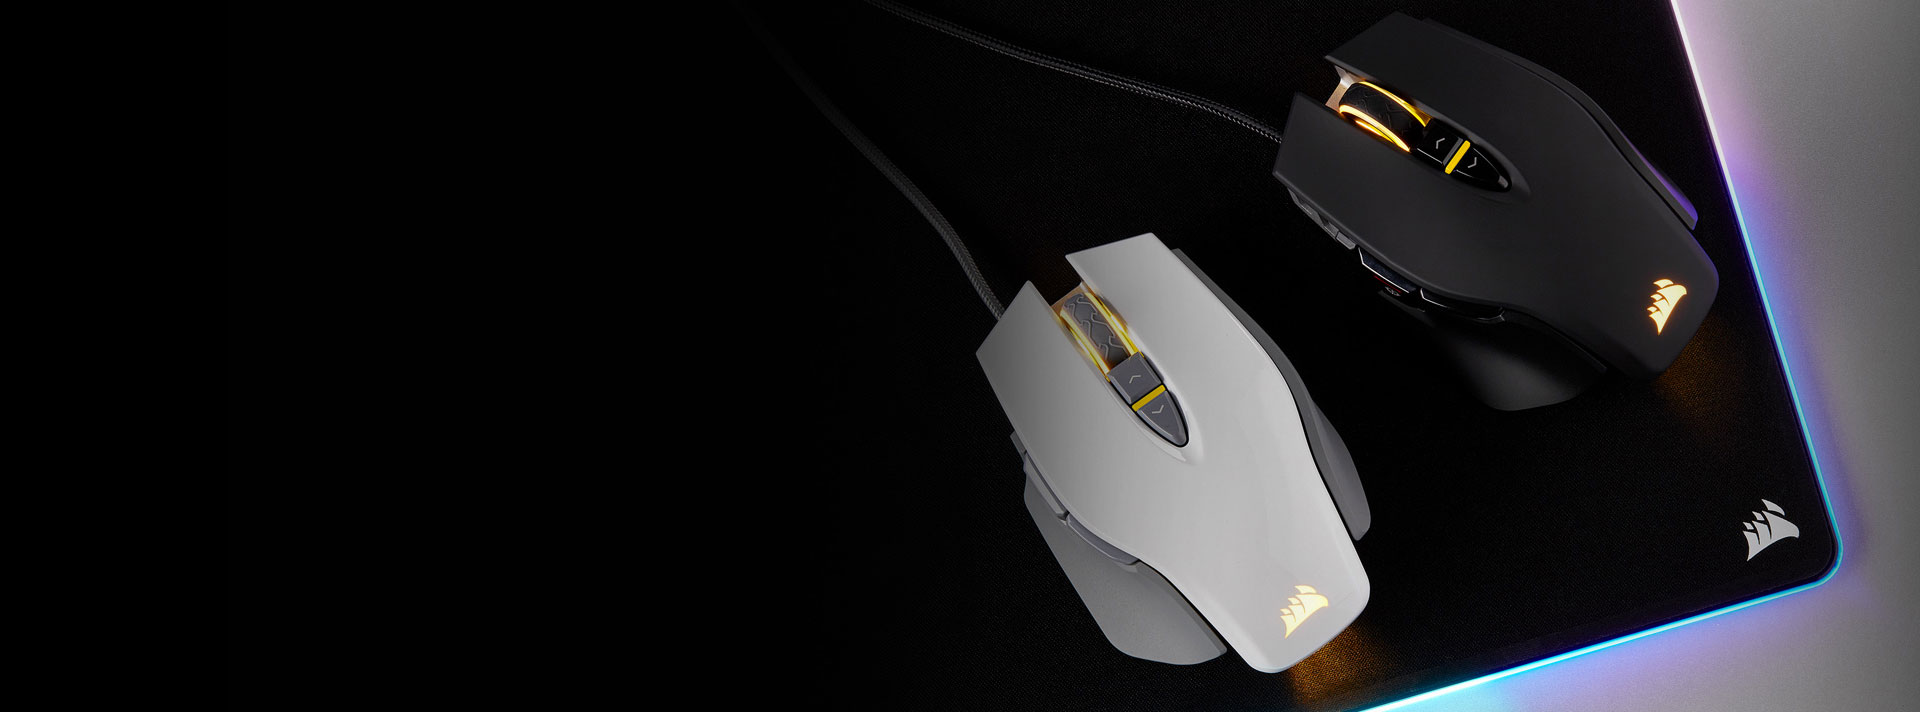 Gaming Mice Corsair